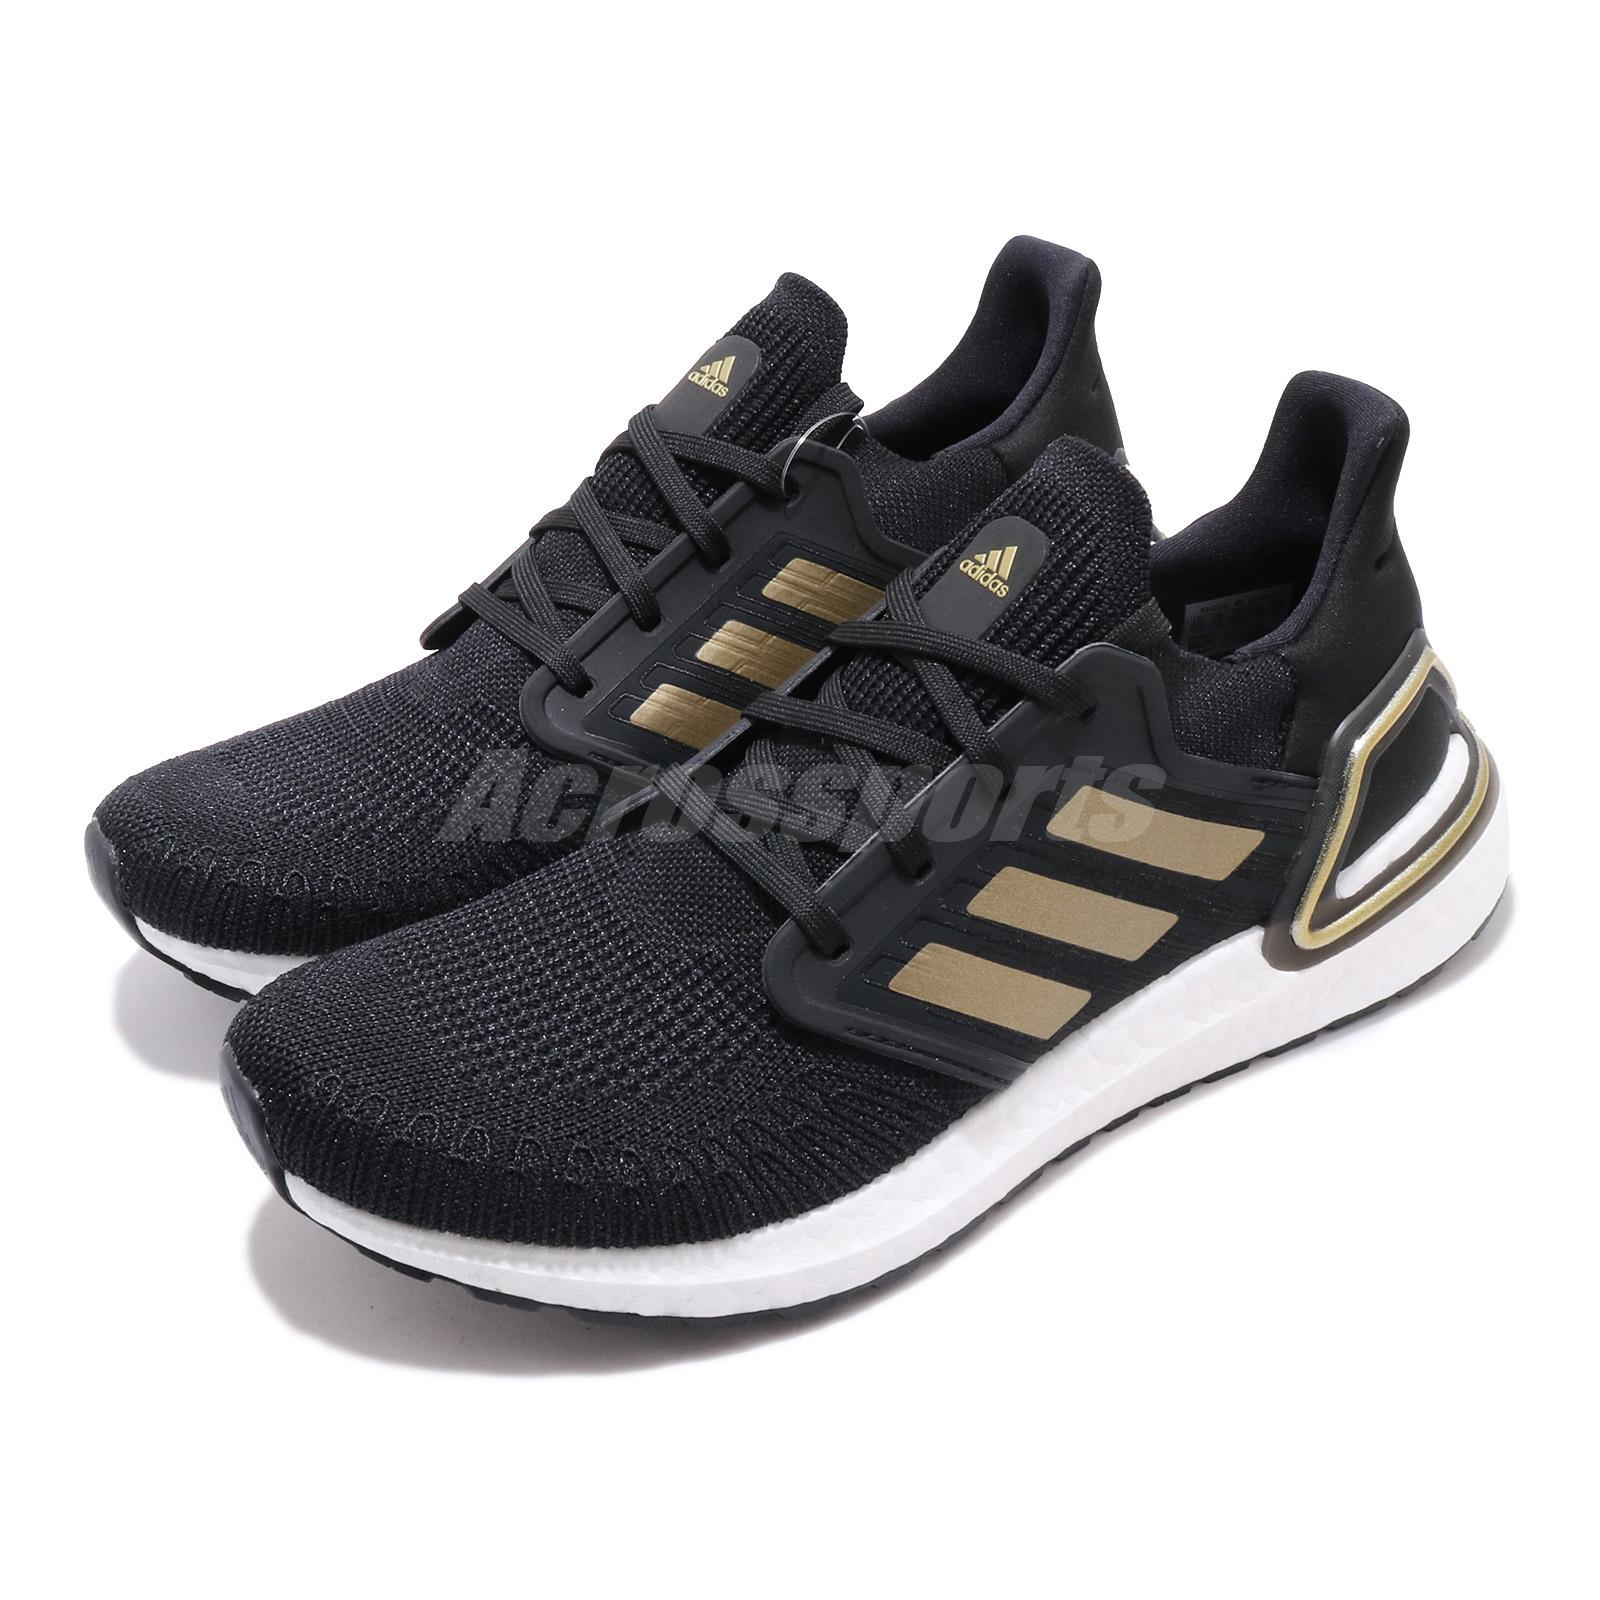 black and gold adidas shoes mens